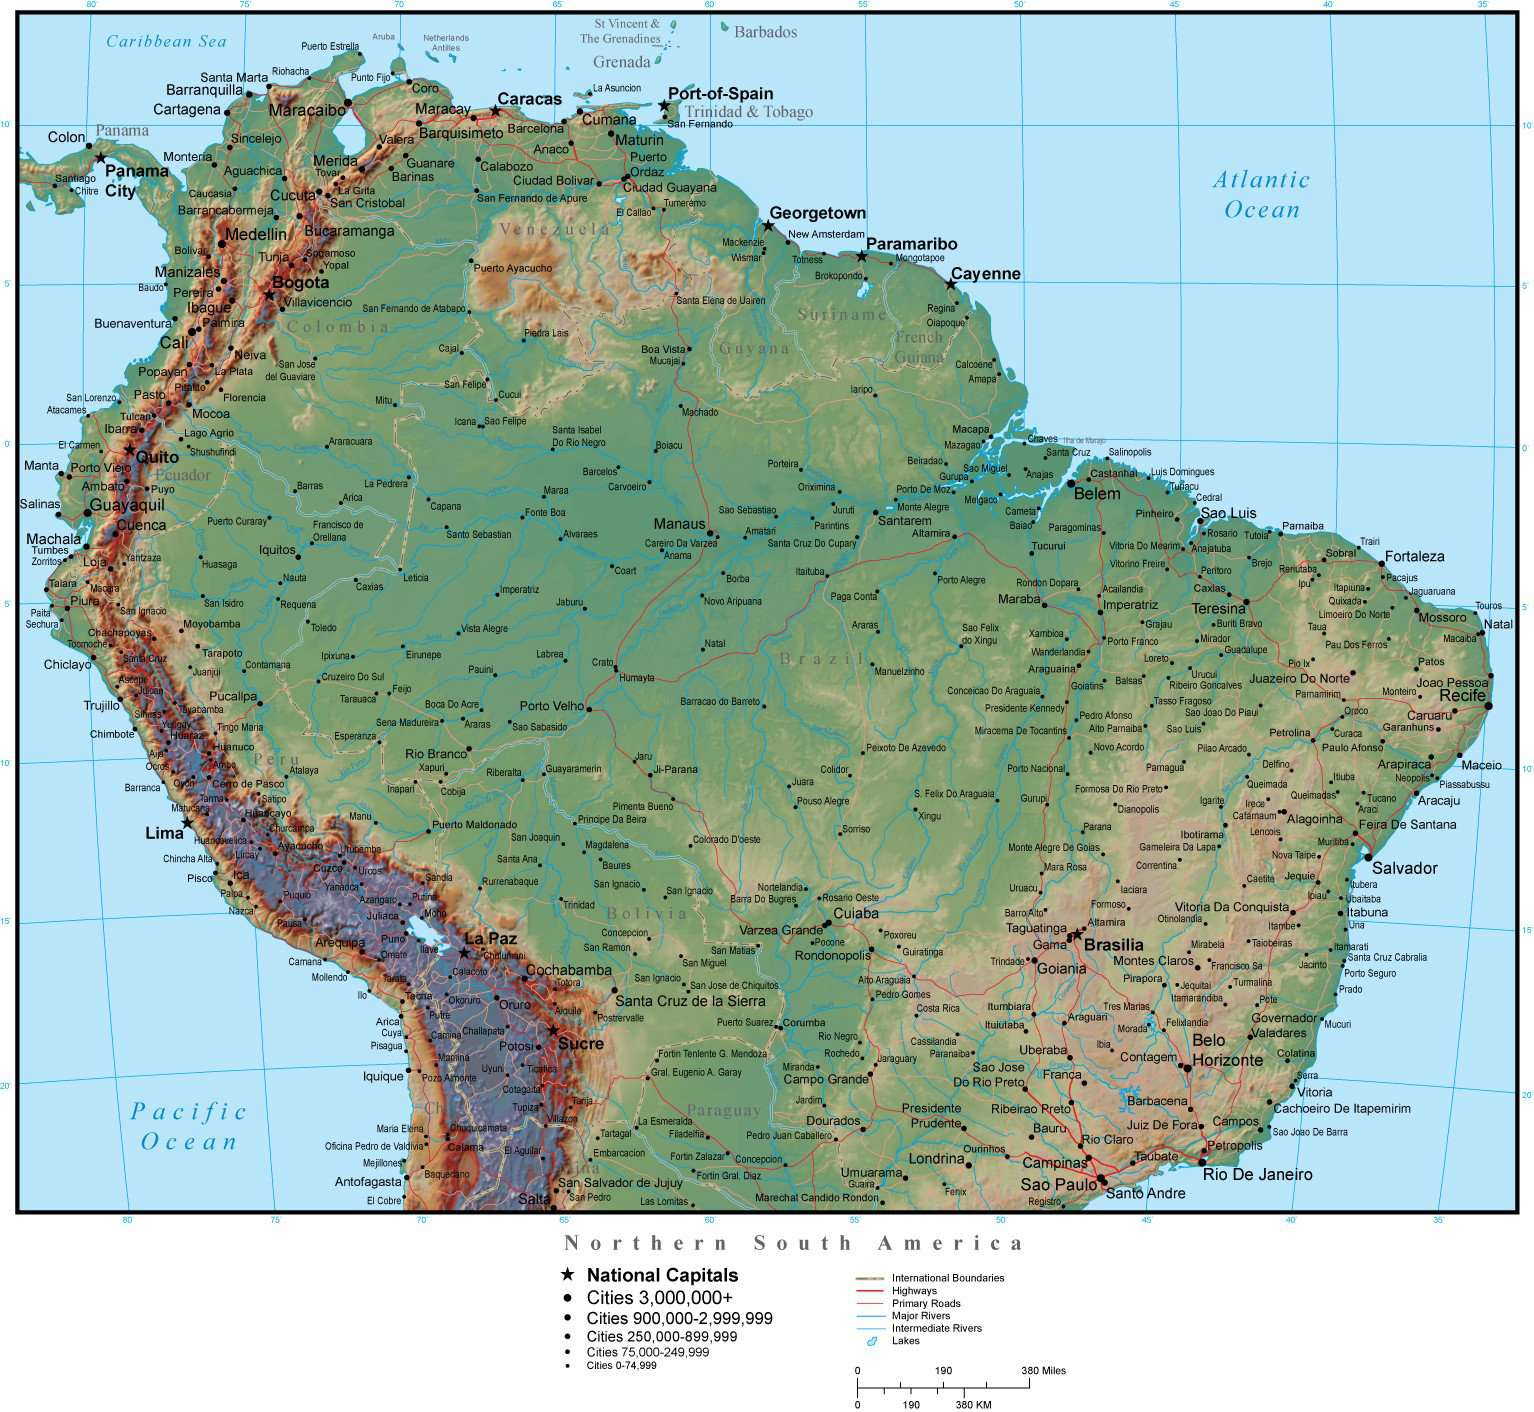 Northern South America Map Plus Terrain with Countries, Capitals, Cities, on major rivers in south america, map of northern ca wine country, map of northern east coast usa, map of north america natural resources, topography of northern south america, northern part of south america, map of north america without labels, map of latin america, map of northern lebanon, map of the northern america, political map of america, map of northern fiji, map of northern adriatic, map of northern ukraine, map of eastern north america, map of northern jordan, map of central america, map of northern south carolina, map of northern european rivers, map of northern wisconsin,